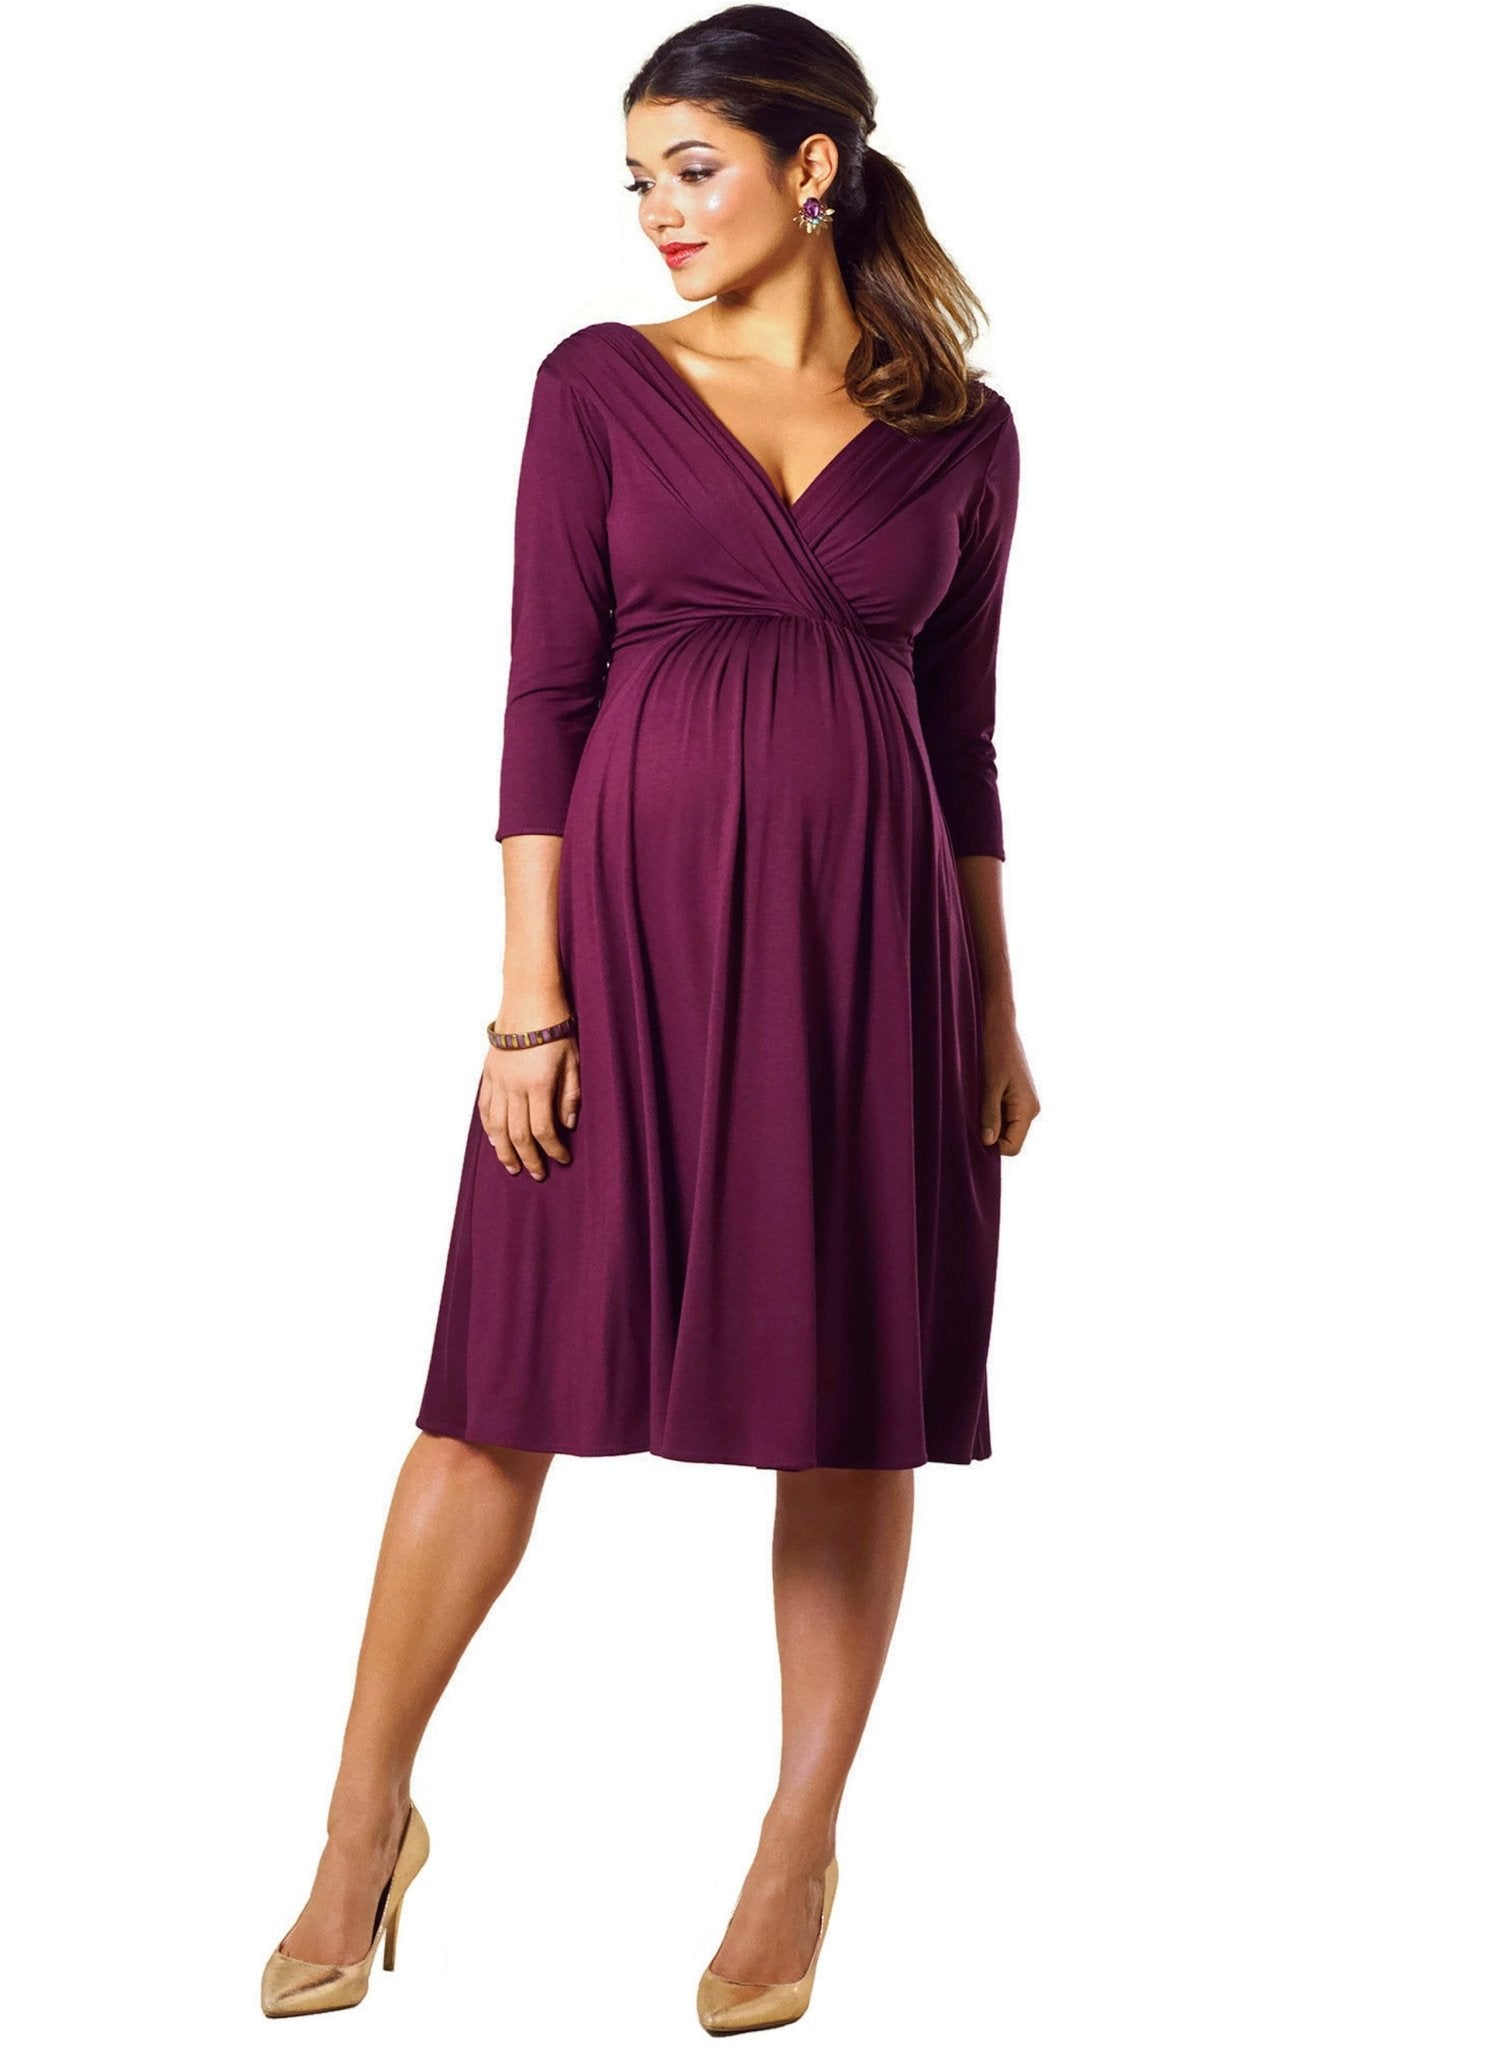 Willow Maternity Dress- Claret - Mums and Bumps